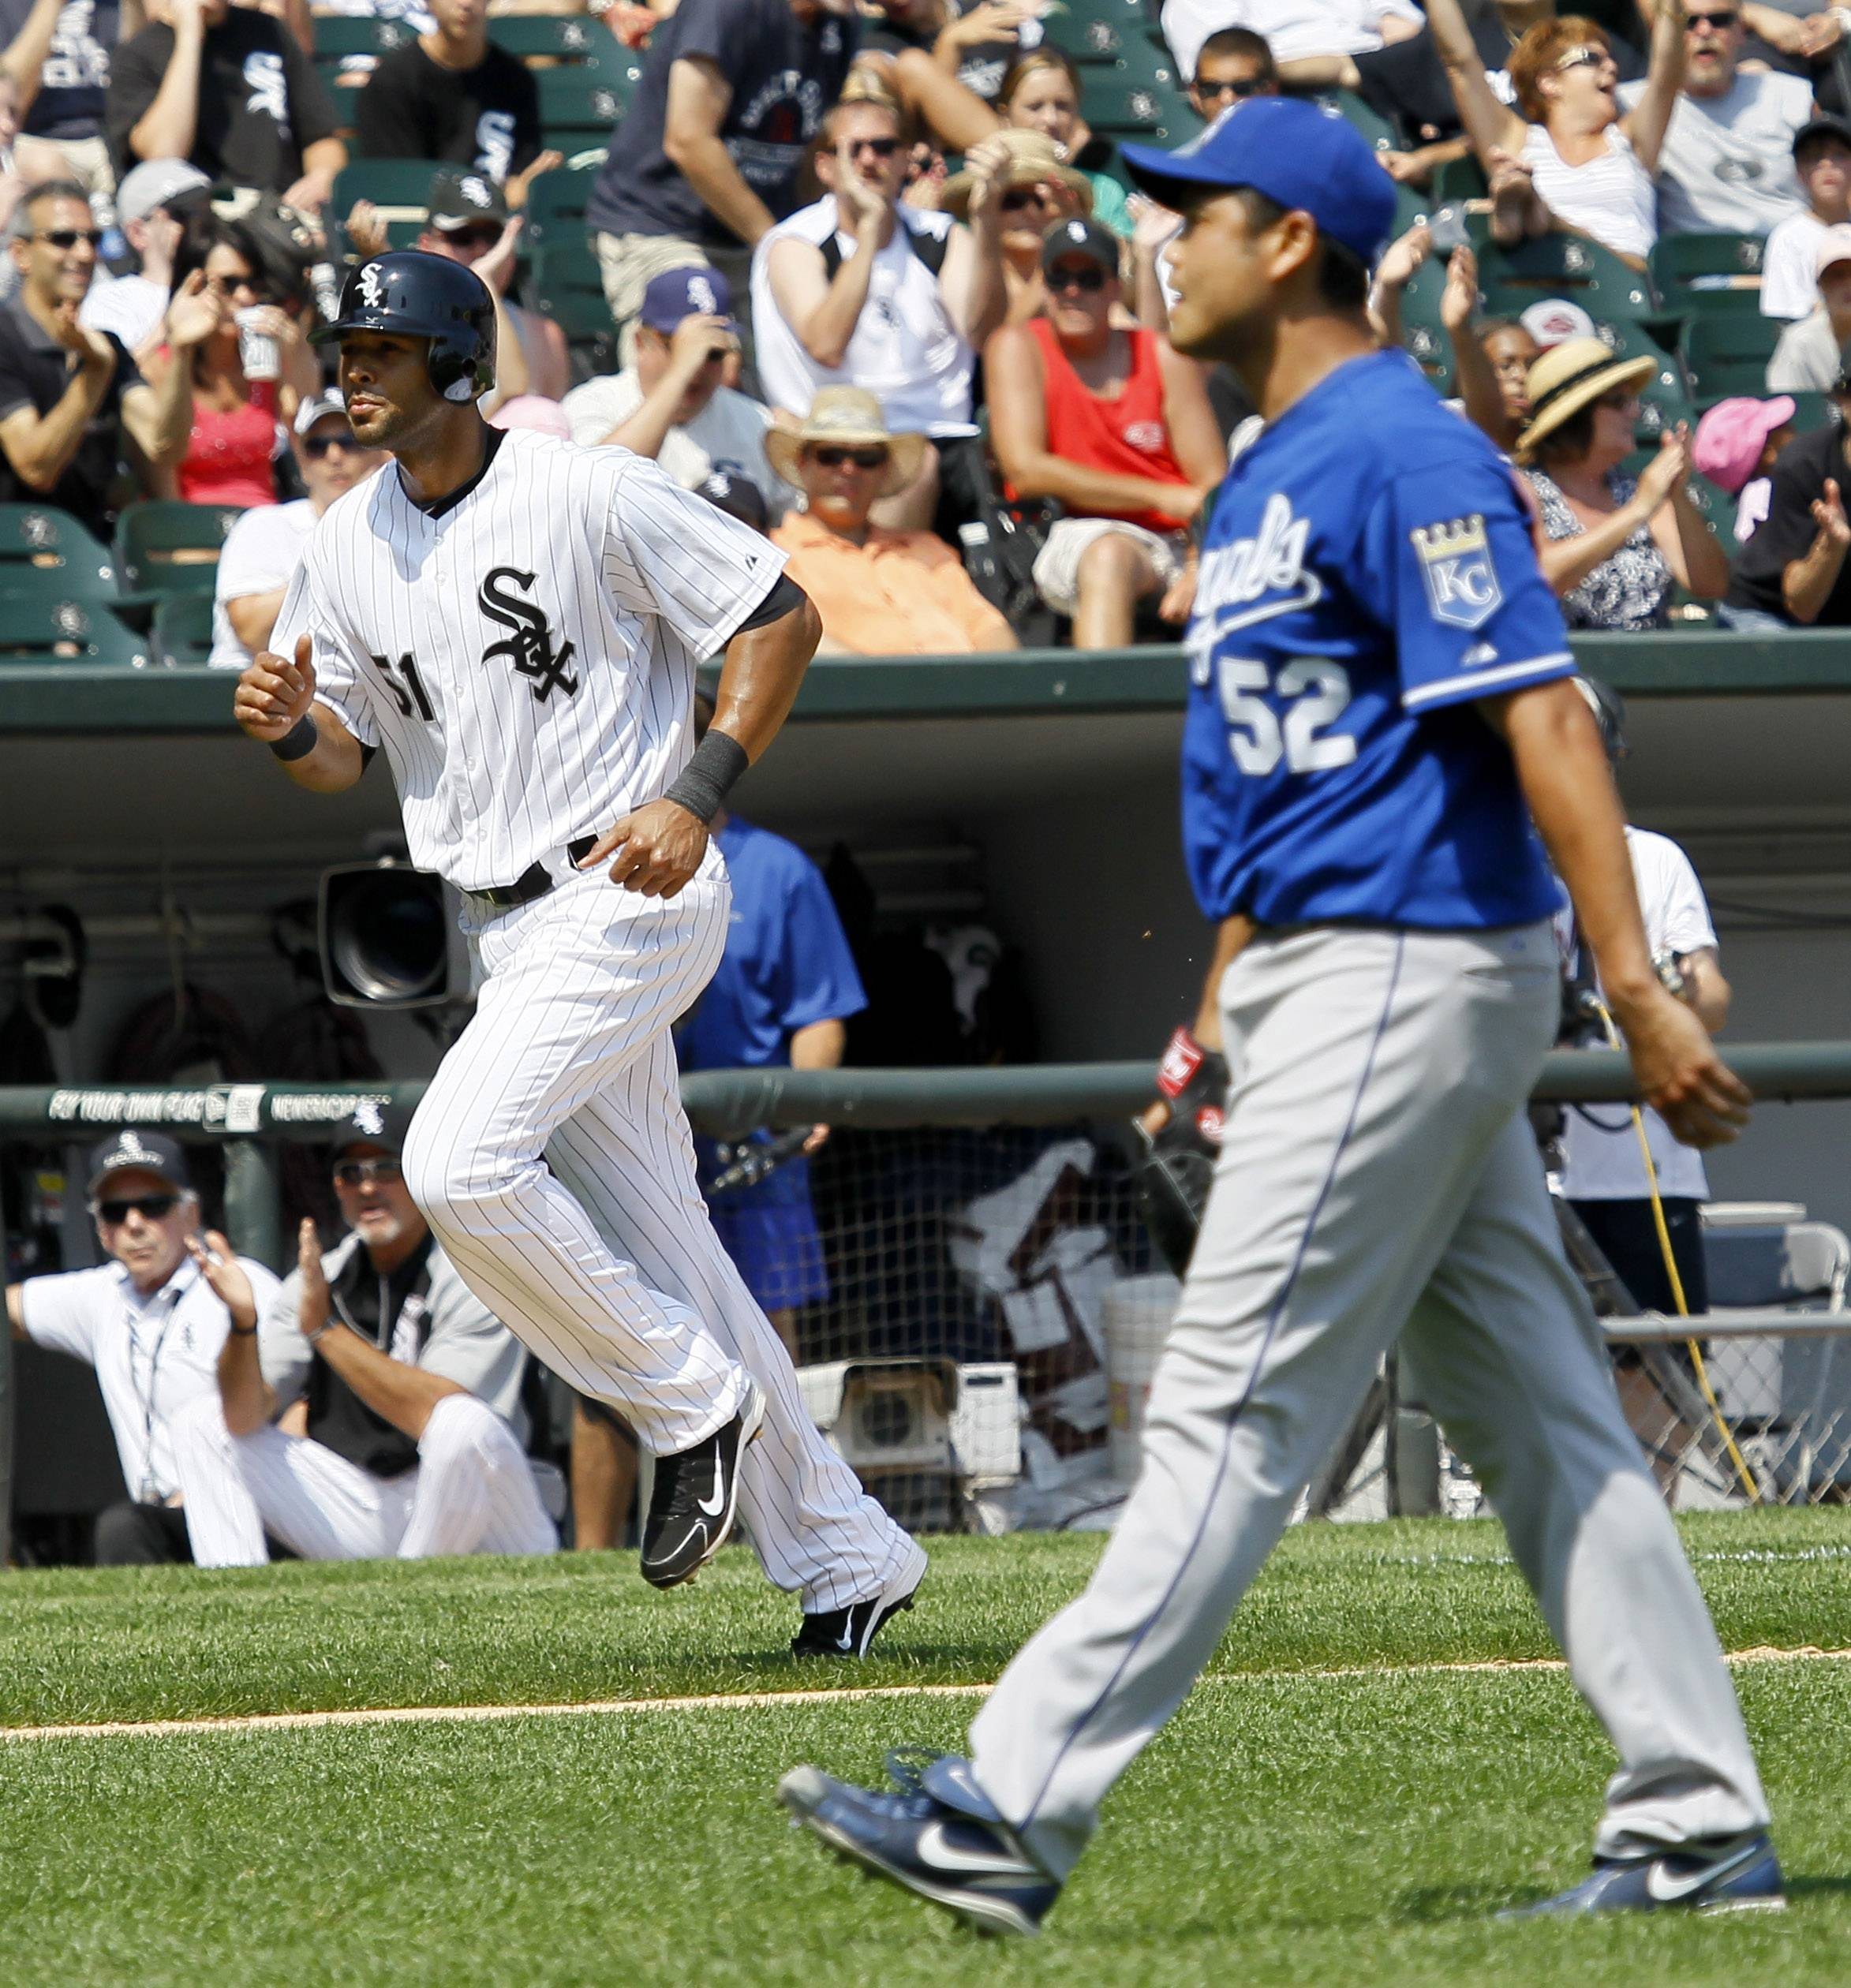 Punchless White Sox struggle again in loss to Royals